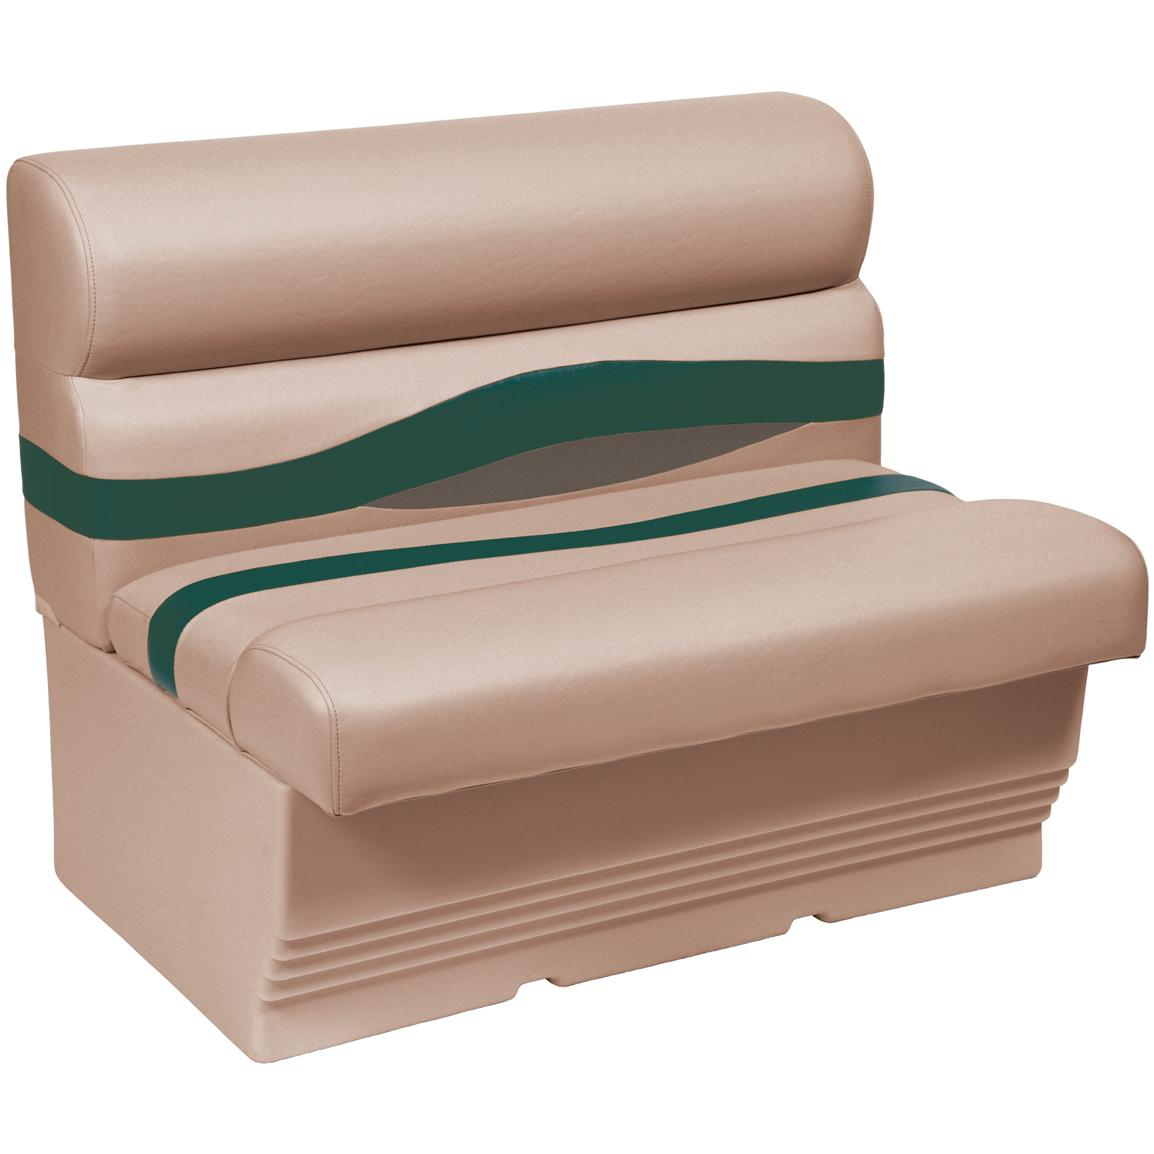 Wise® Premier 1100 Series 27 inch Pontoon Bench Seat, Color F